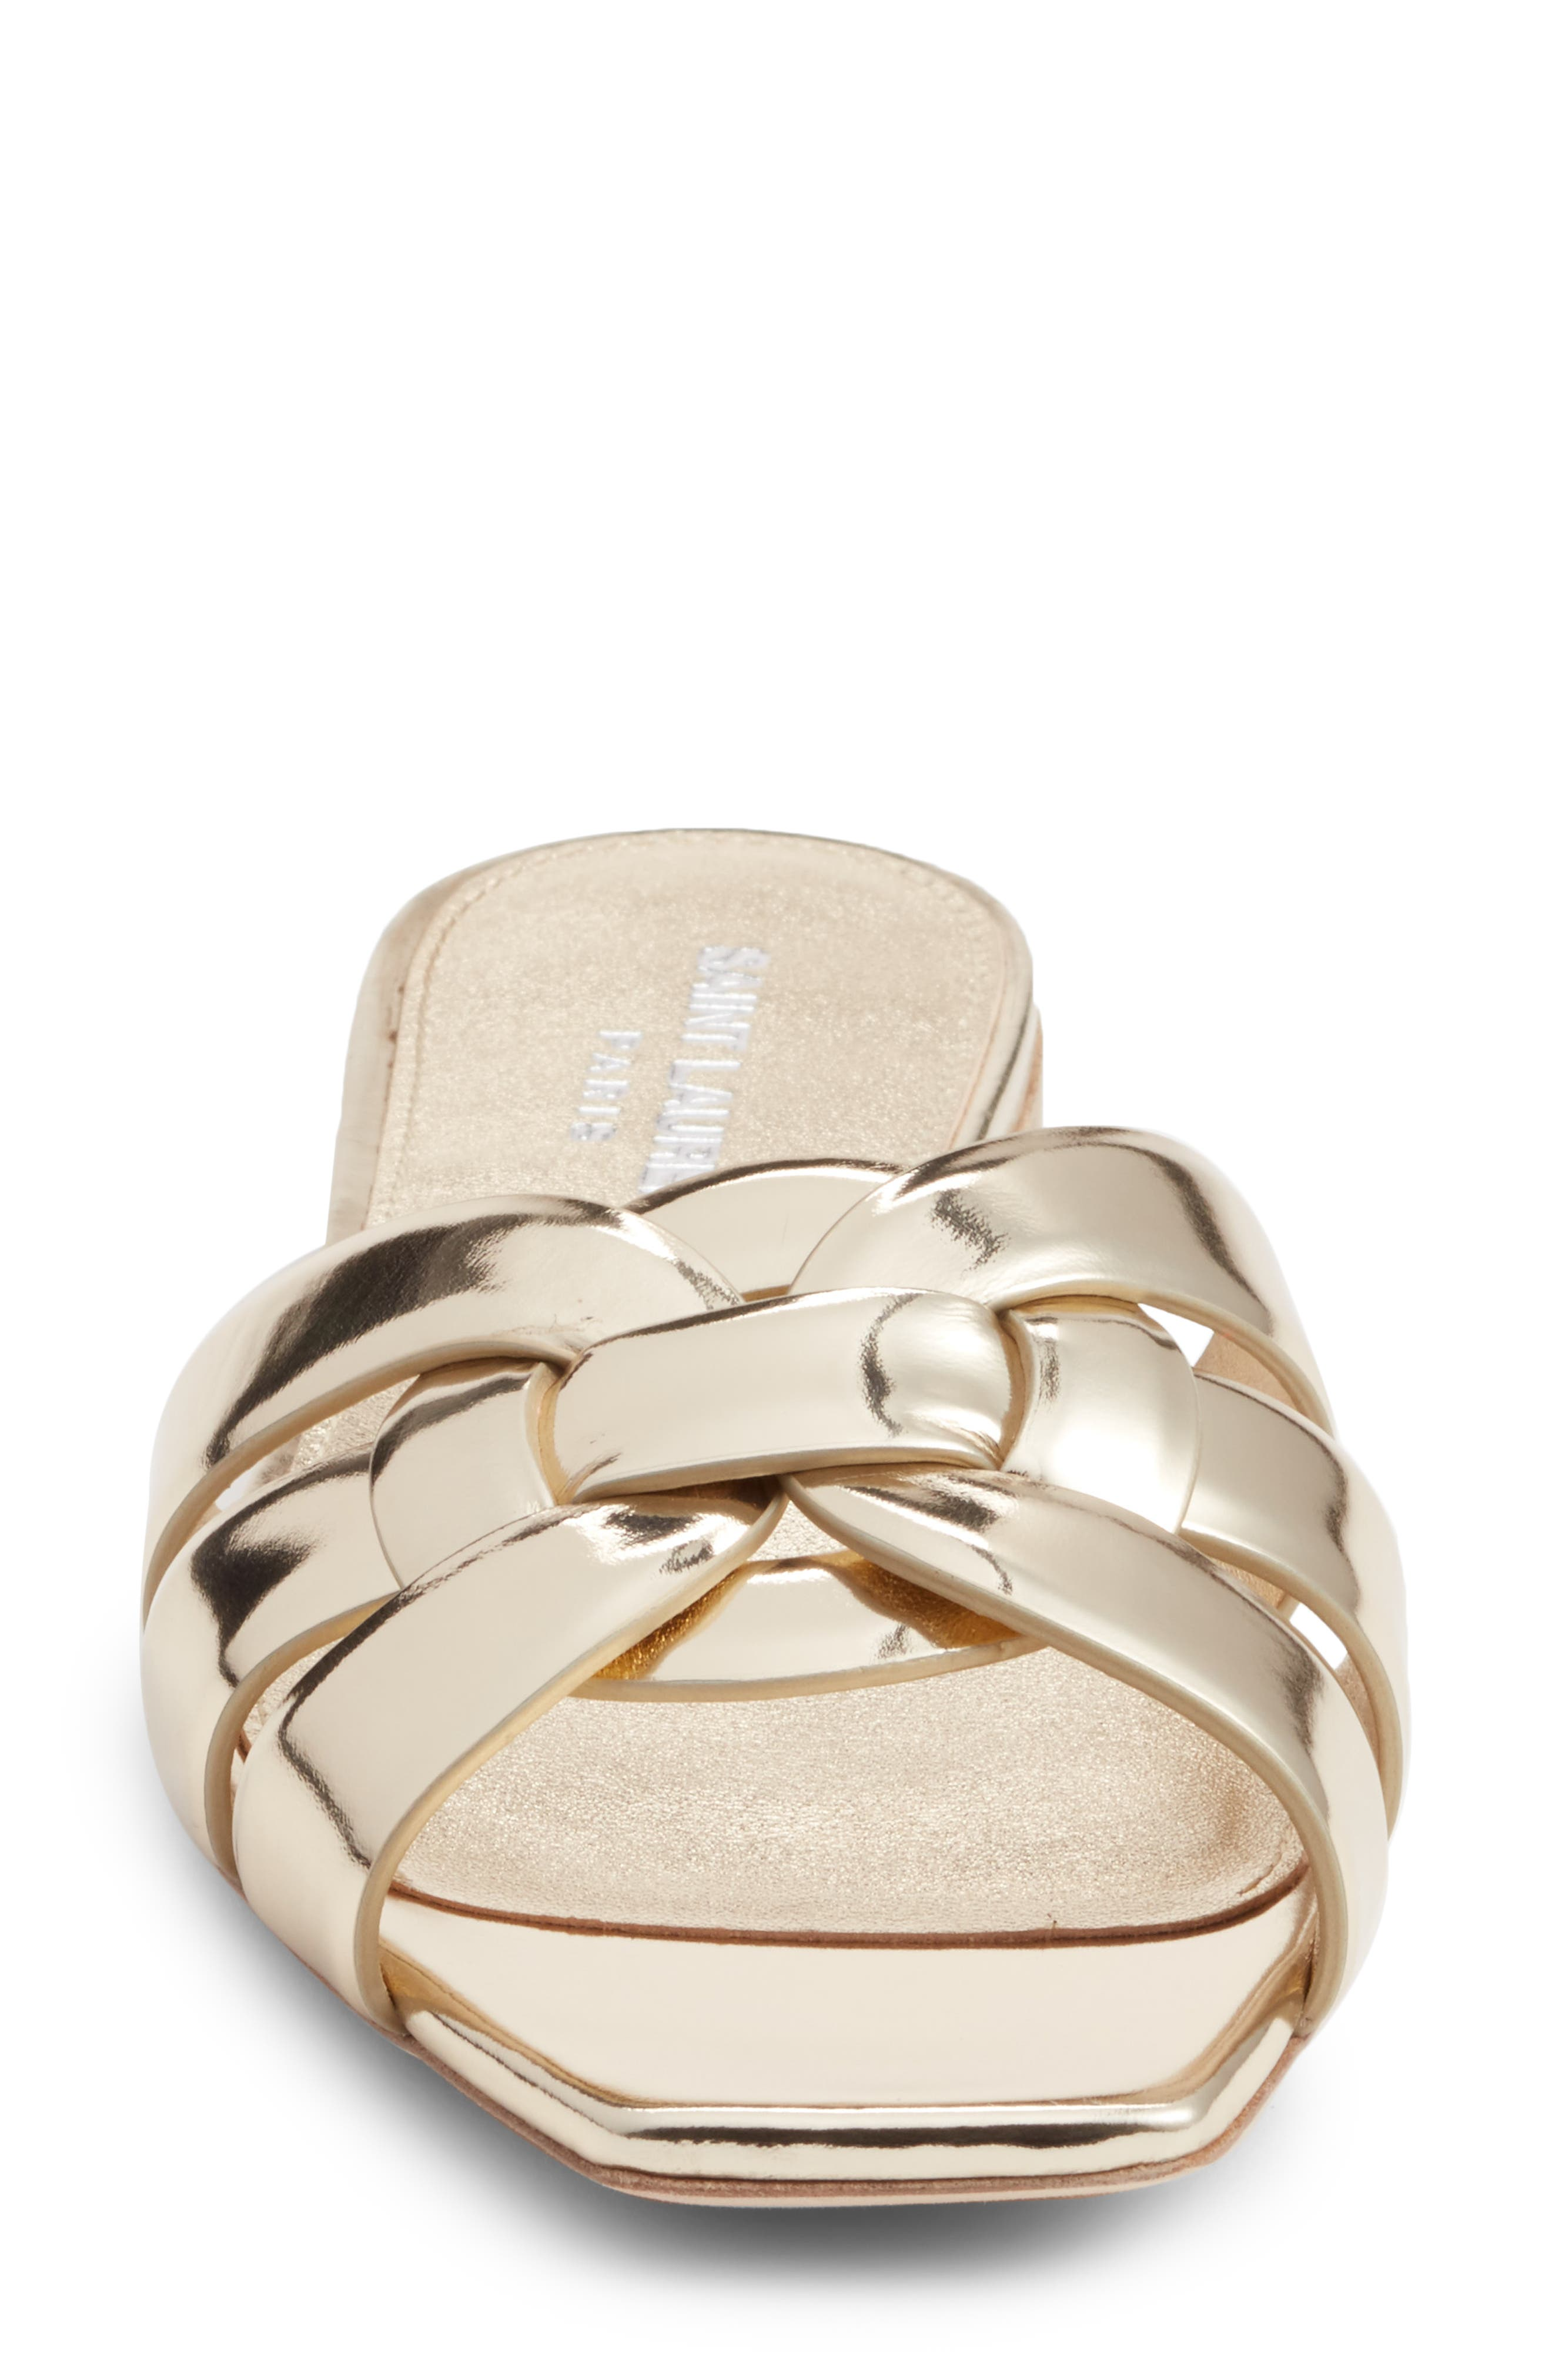 Tribute Slide Sandal,                             Alternate thumbnail 4, color,                             Metallic Gold